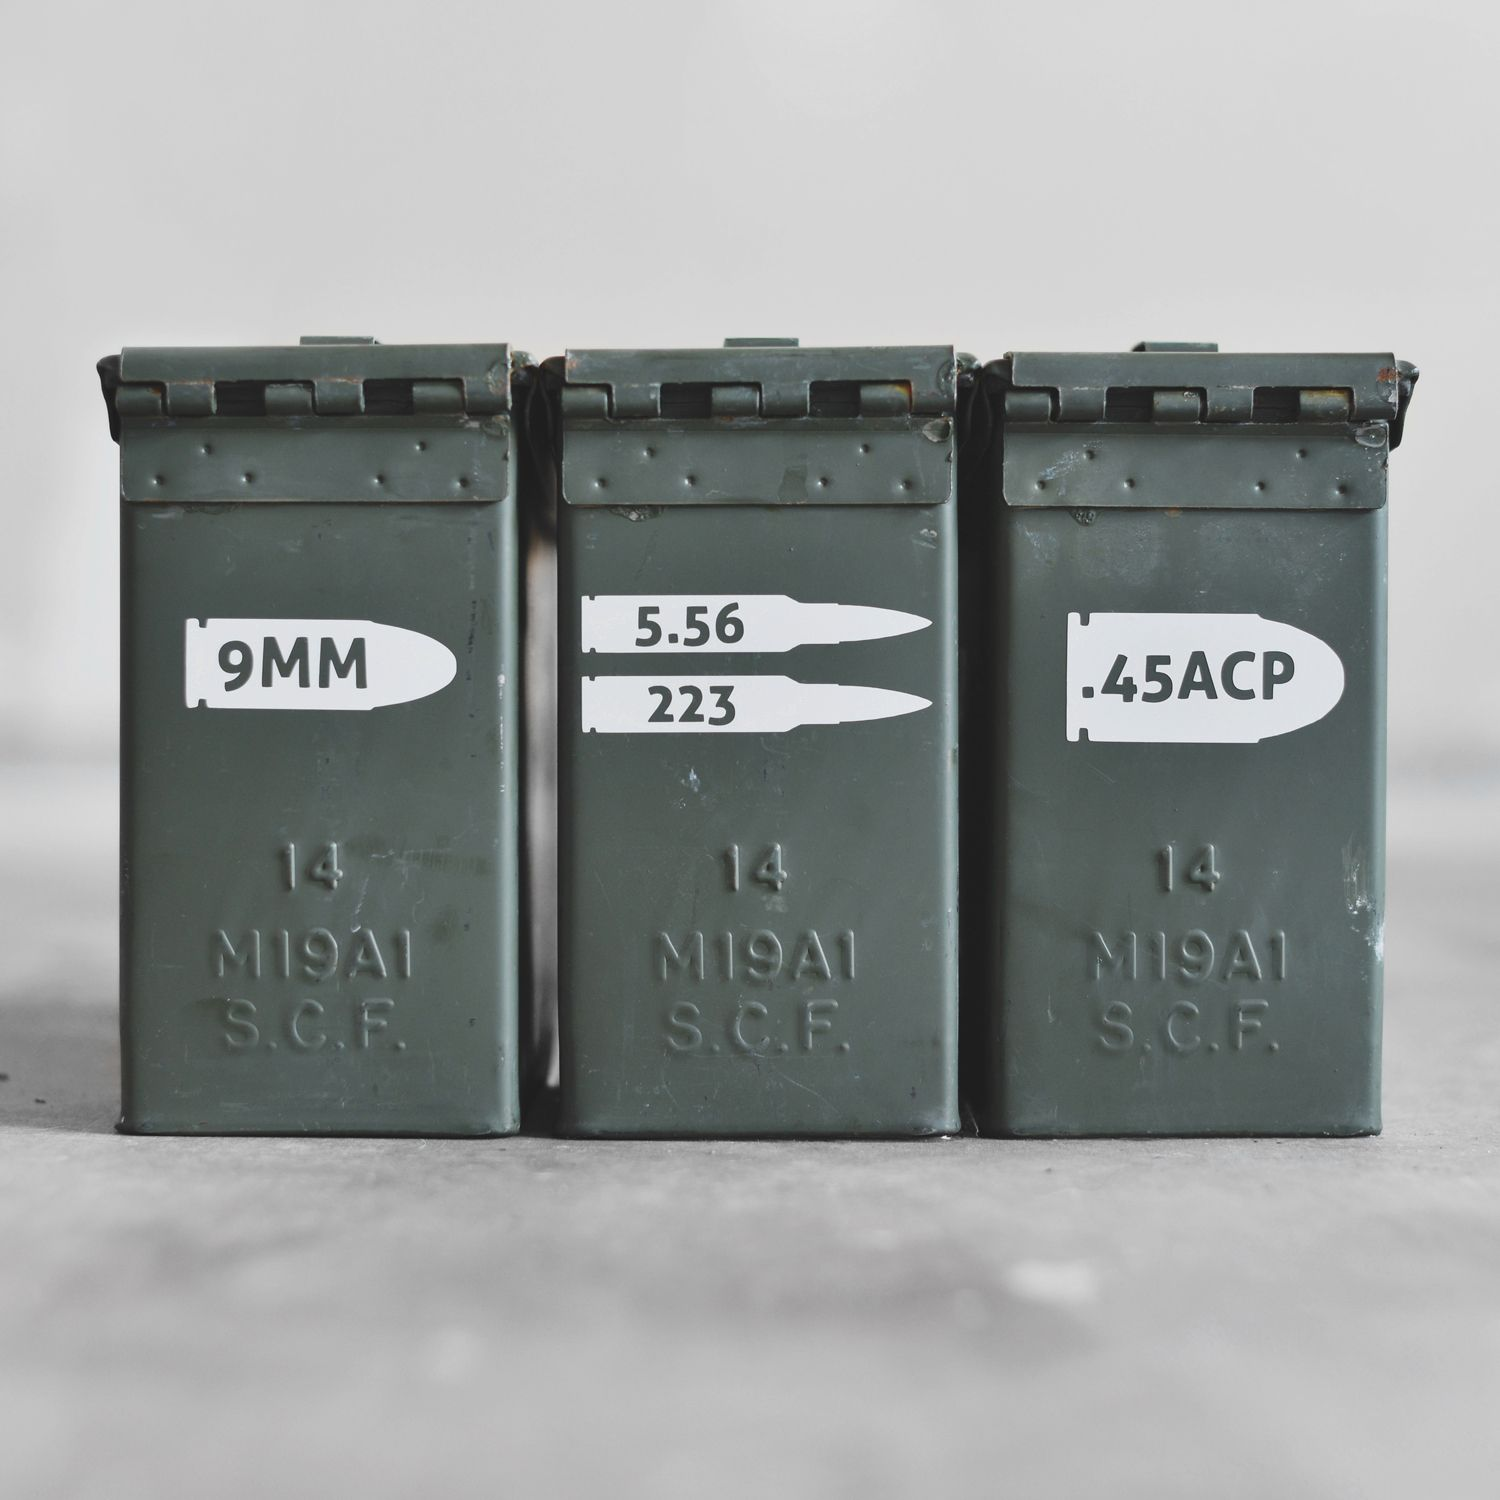 9mm/223/556 <b>No more writing on your ammo cans with permanent marker in your God awful handwriting! Use these Quick Recognition Ammo vinyls to label what caliber ammo you have filled inside.</b>...